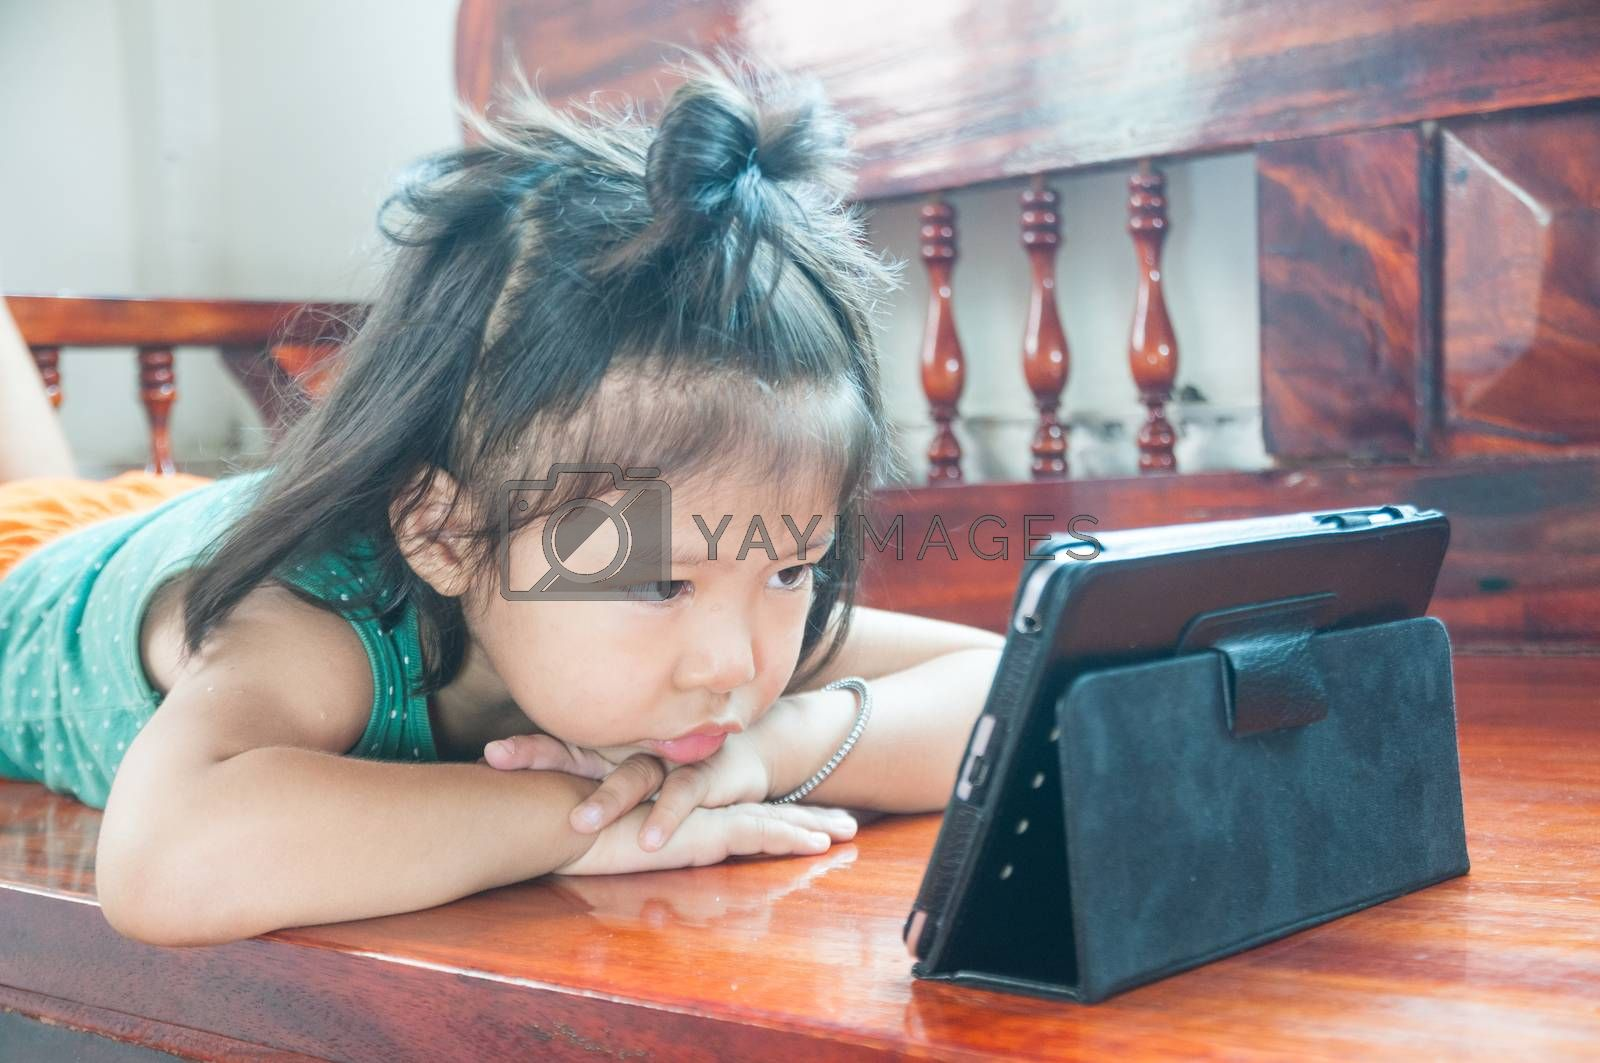 Unhappy Young Girl lying on wooden stool and Learning online course on Wireless Digital Tablet while staying at home in situation of Corona Virus or Covid 19 outbreak.